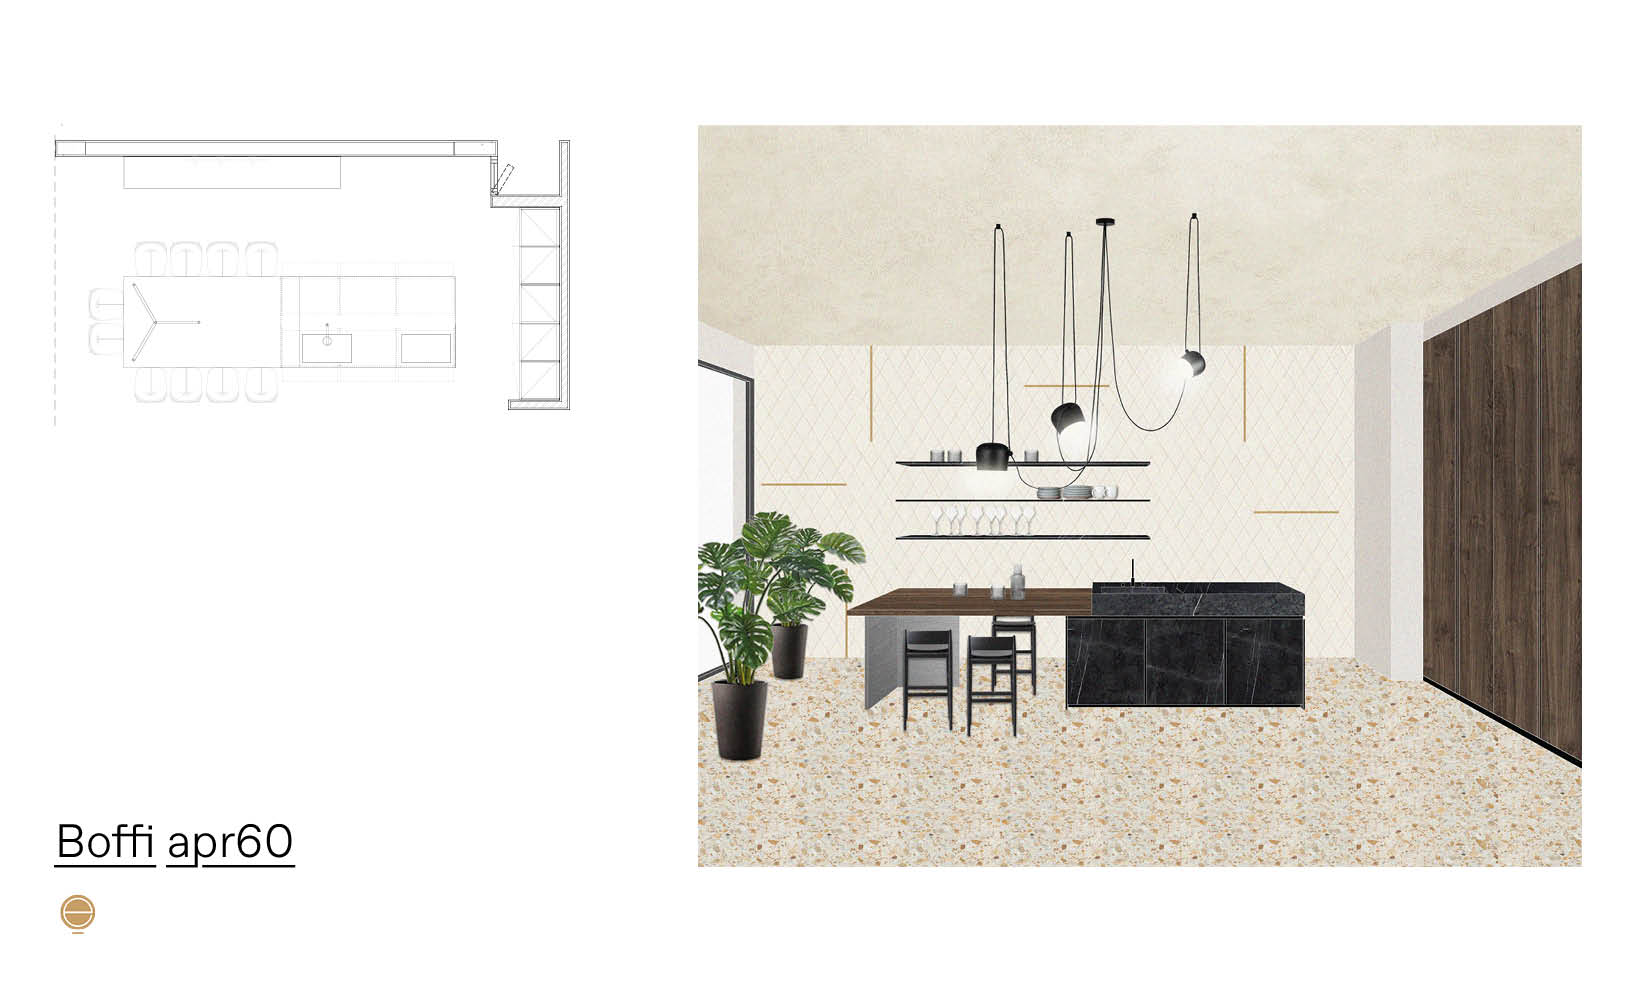 bespoke luxury kitchens and Boffi Apr60 composition designed by Esperiri